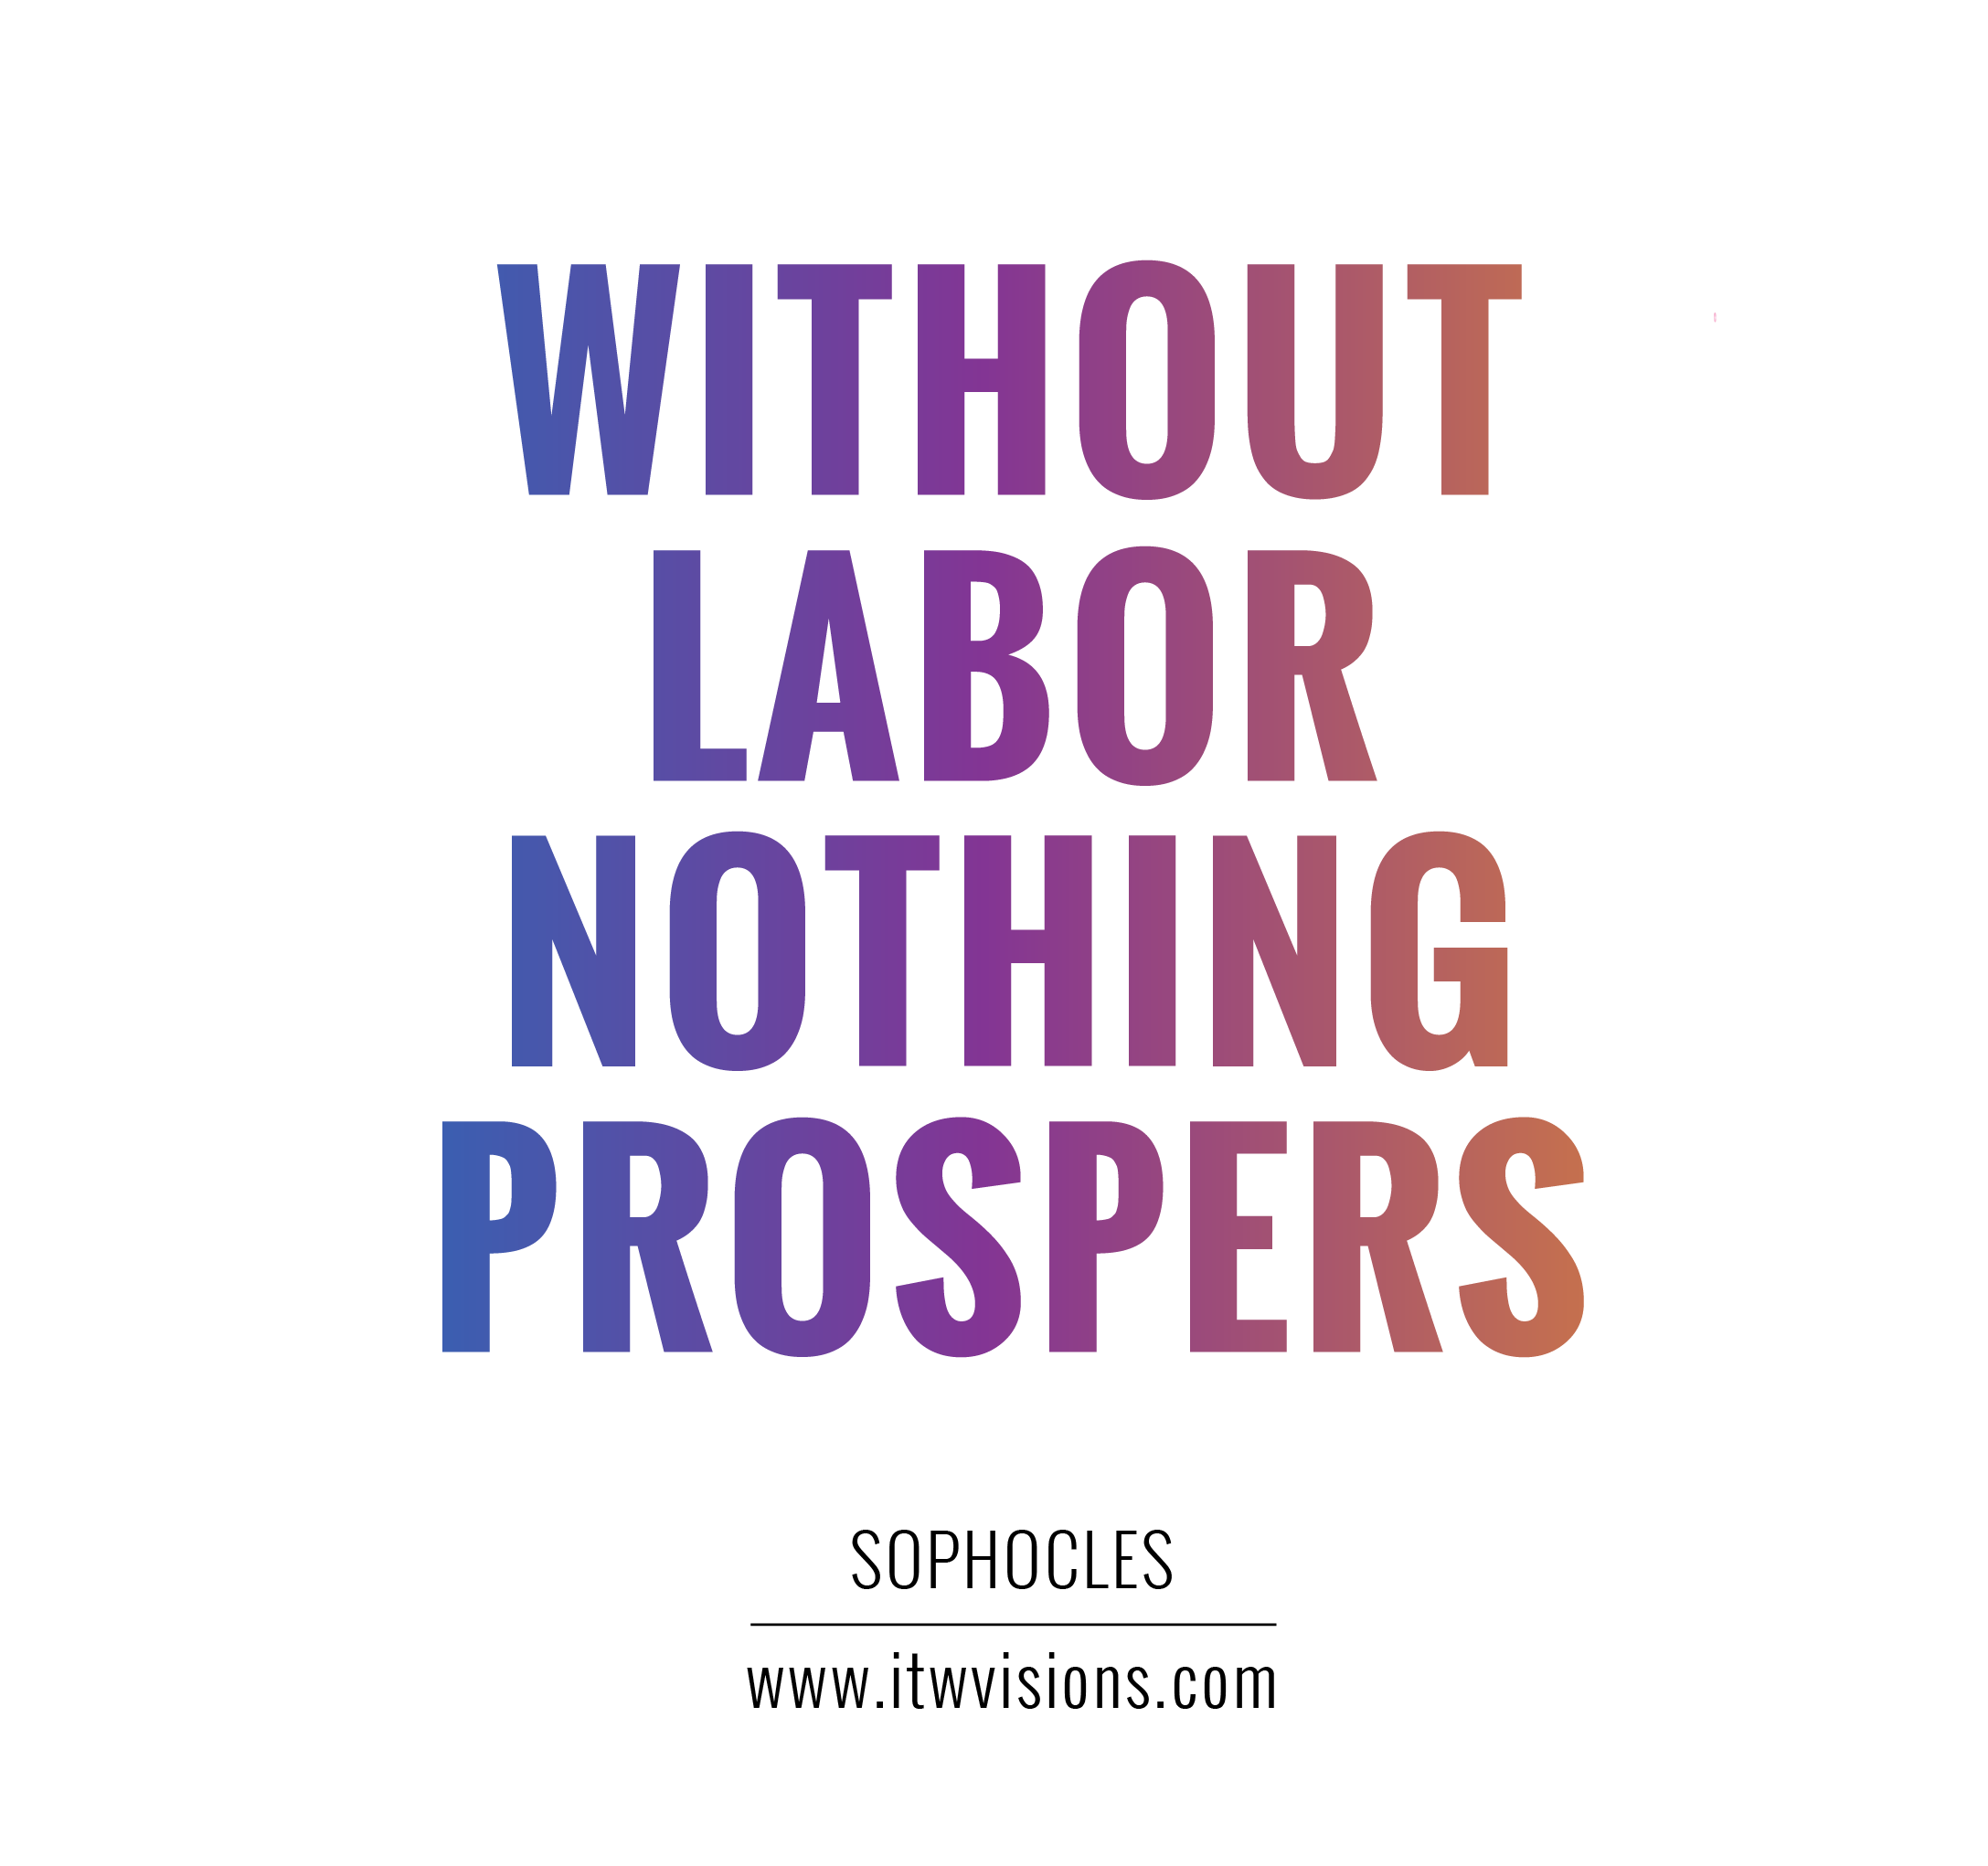 Motivational quote. Without labor nothing prospers. We all need to ...